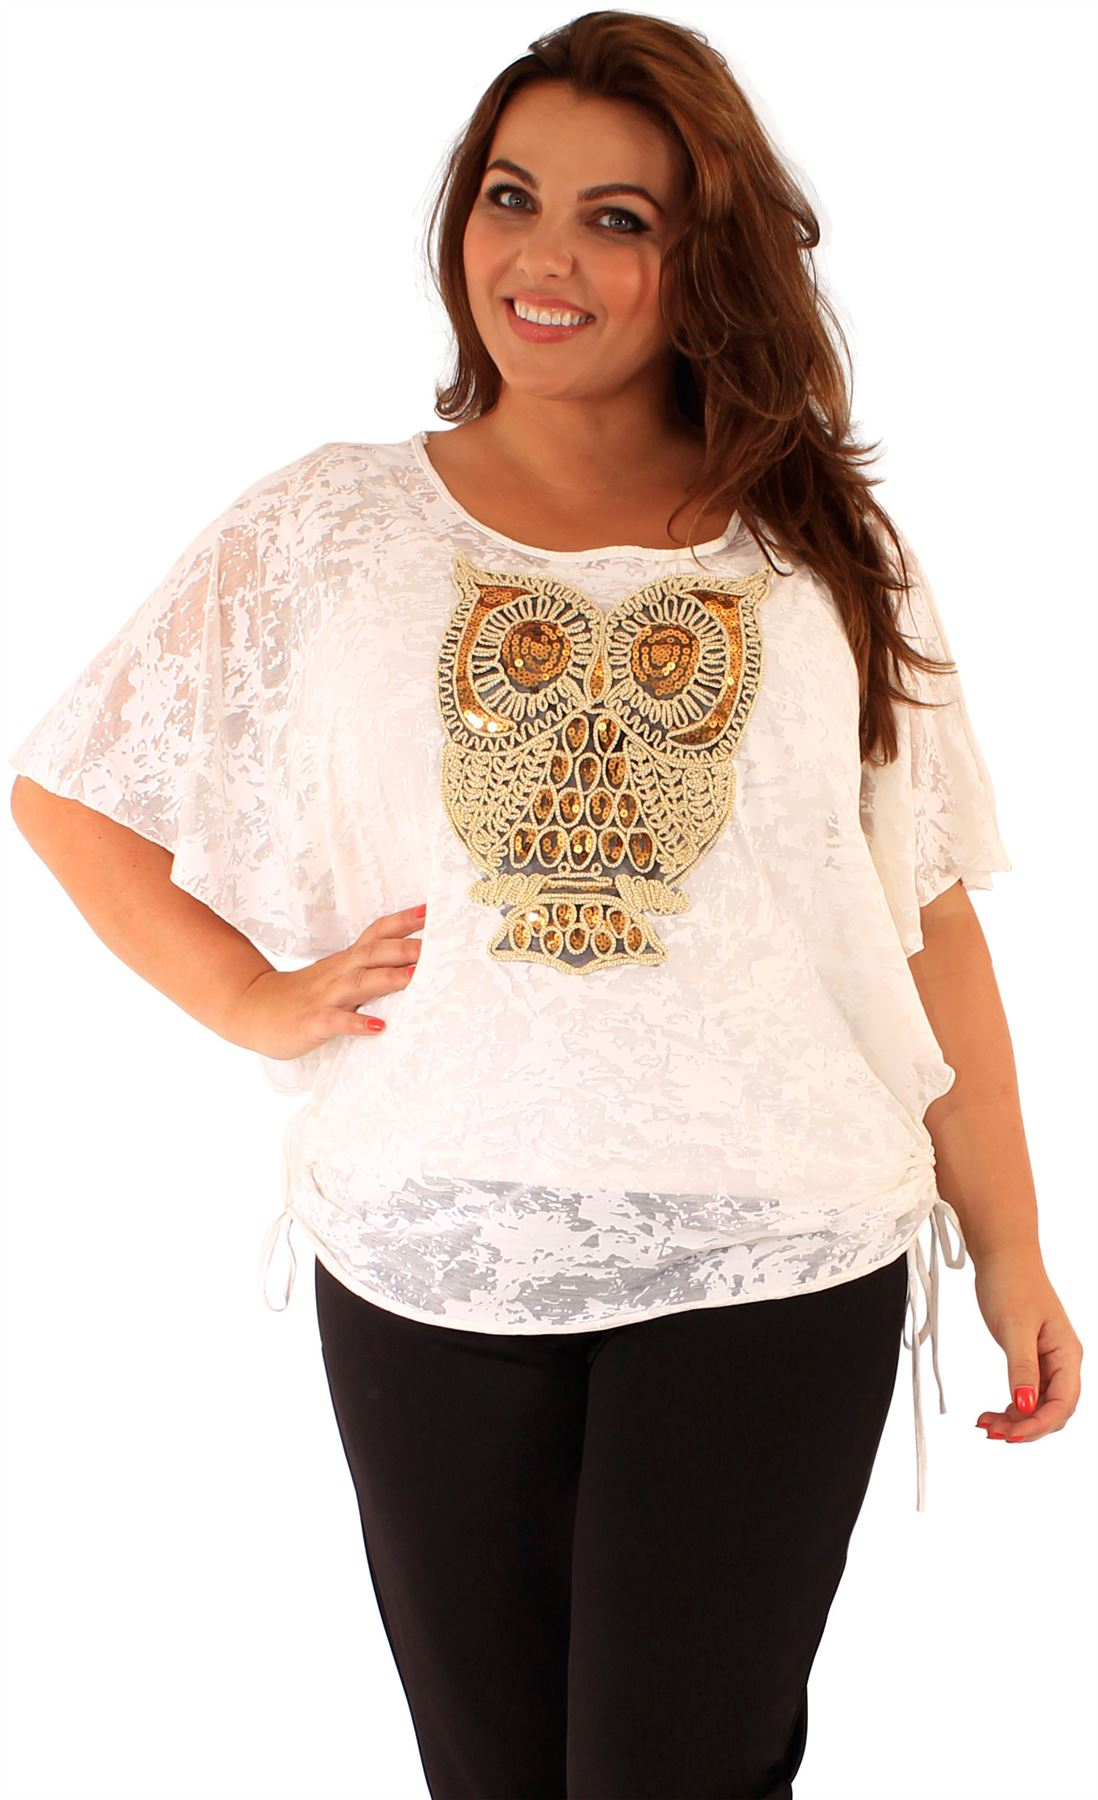 Buy women's plus size clothes: plus size dresses>plus size swimsuits>plus size coats>plus size tops>plus size jeans. skip to content skip to navigation skip to search. Plus Size {{resultHeading}} sign up. Get exclusive Offers and News.